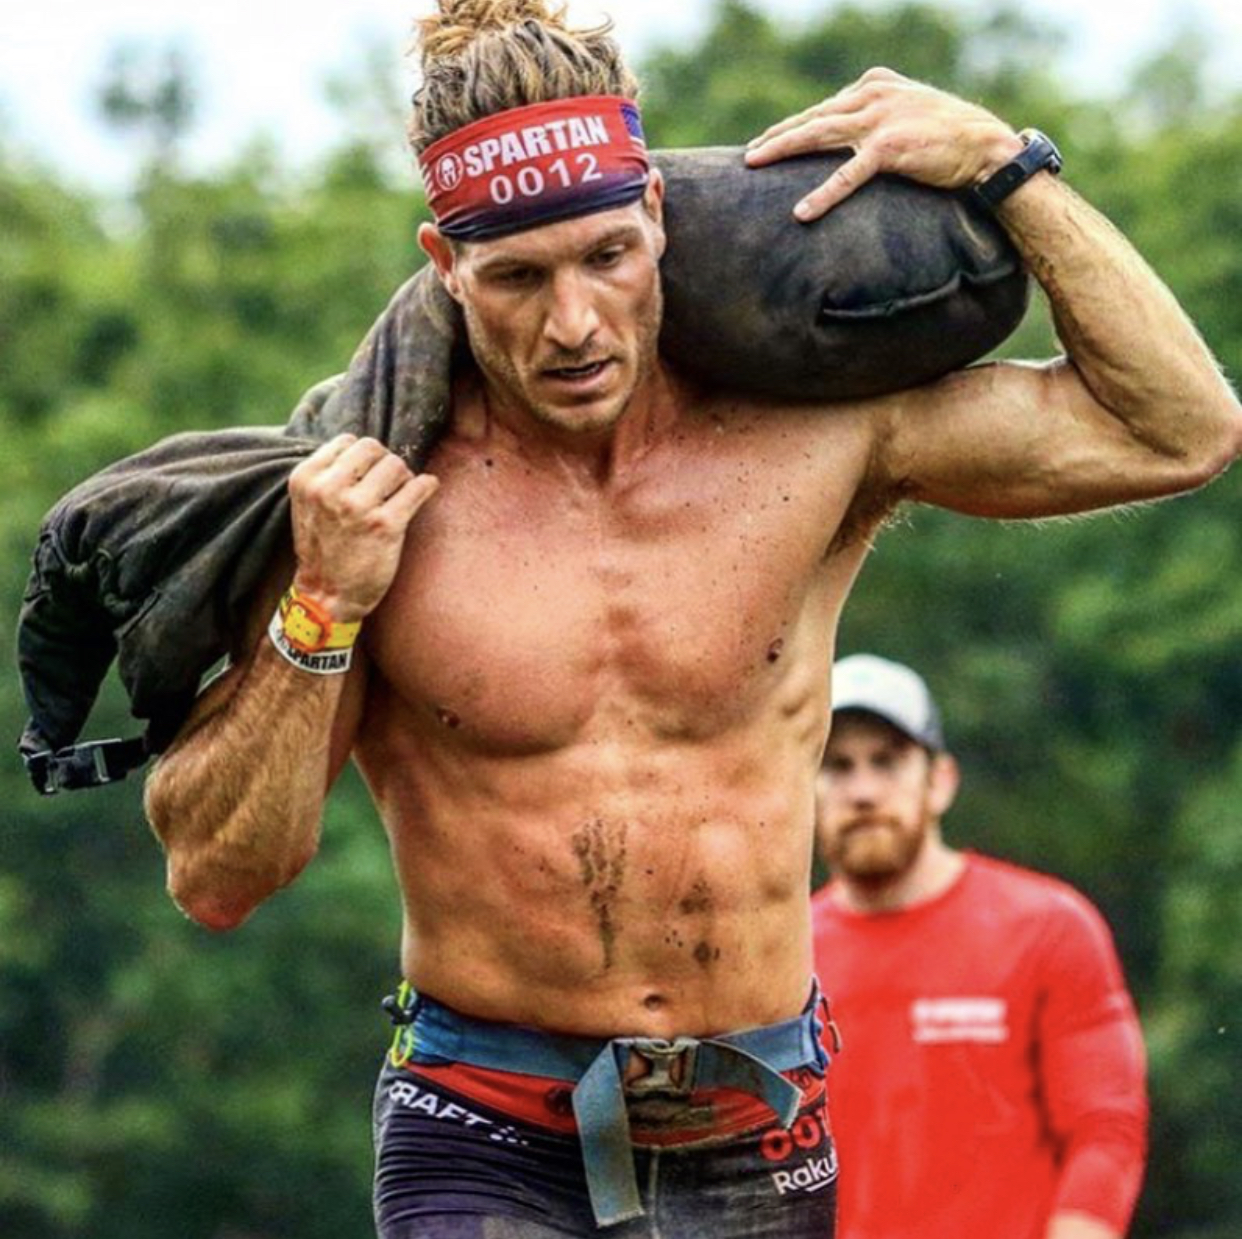 Episode 200: Ryan Kent Recaps Spartan West Virginia and Training for Tahoe WC